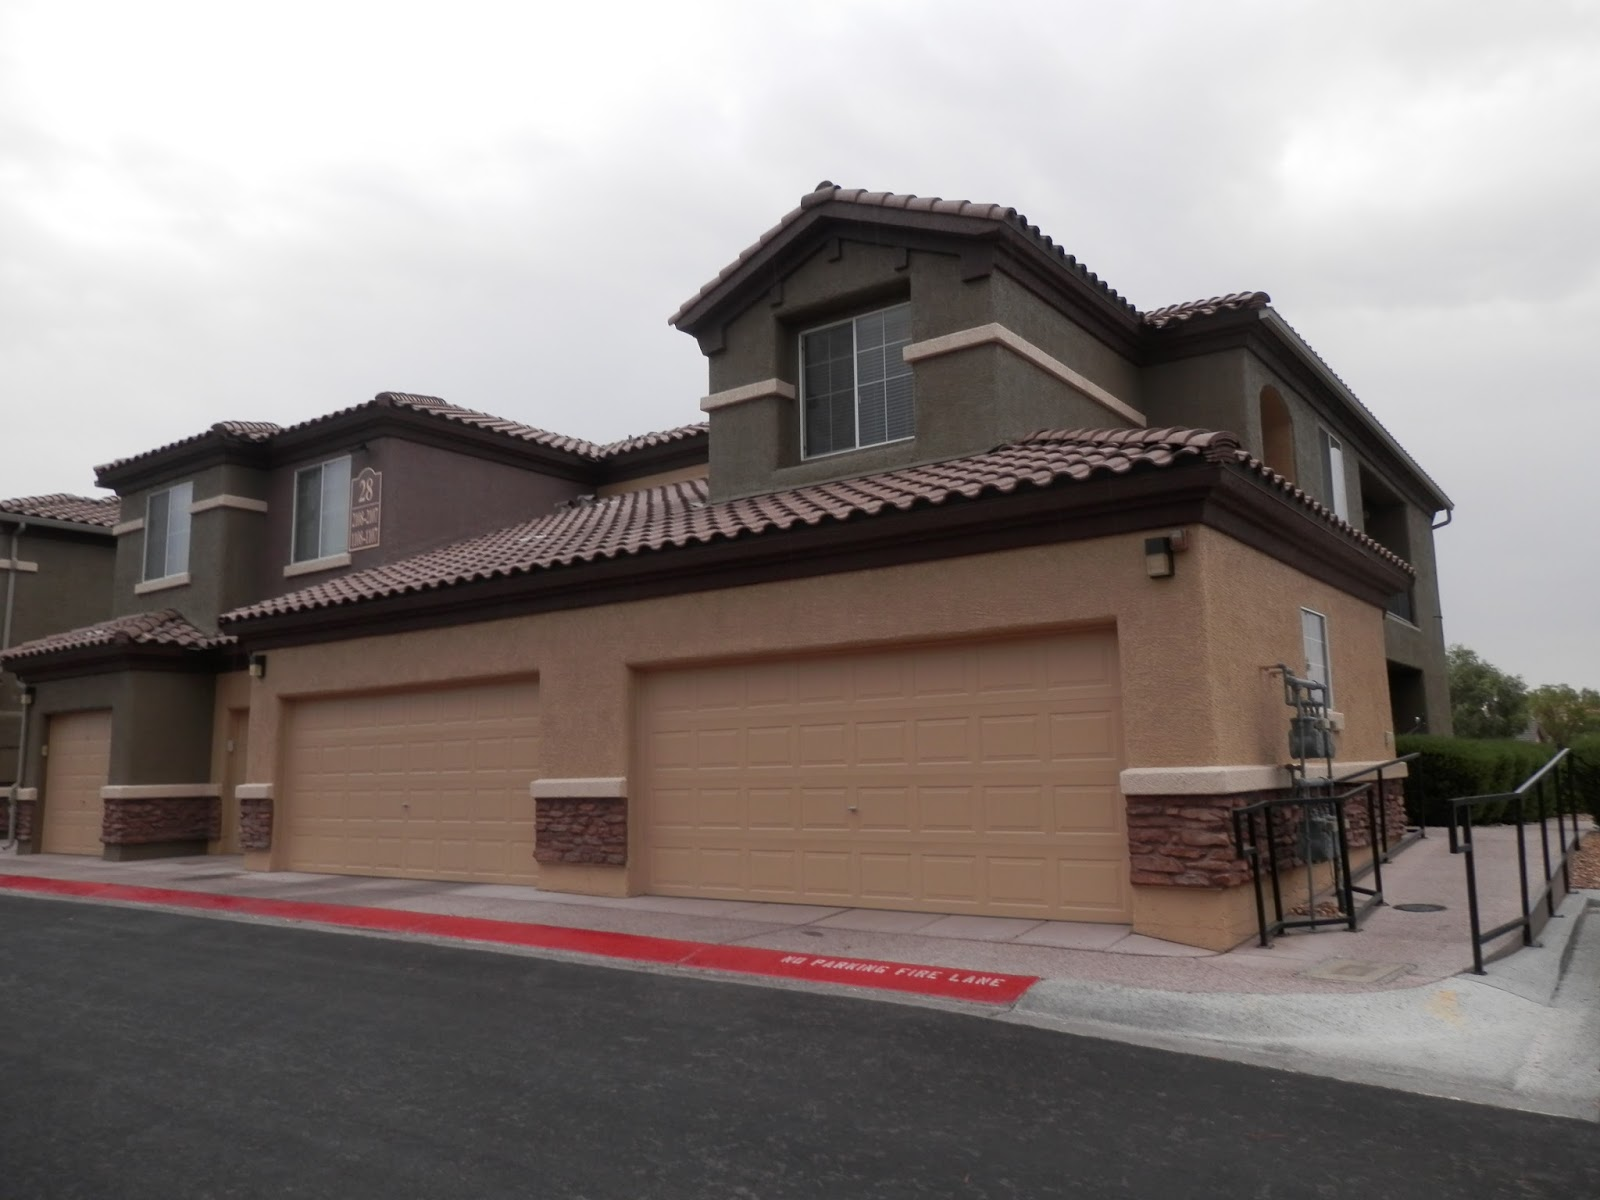 Homes For Sale Private Seller In Las Vegas 3 Bedroom Townhomes For Sale In Las Vegas